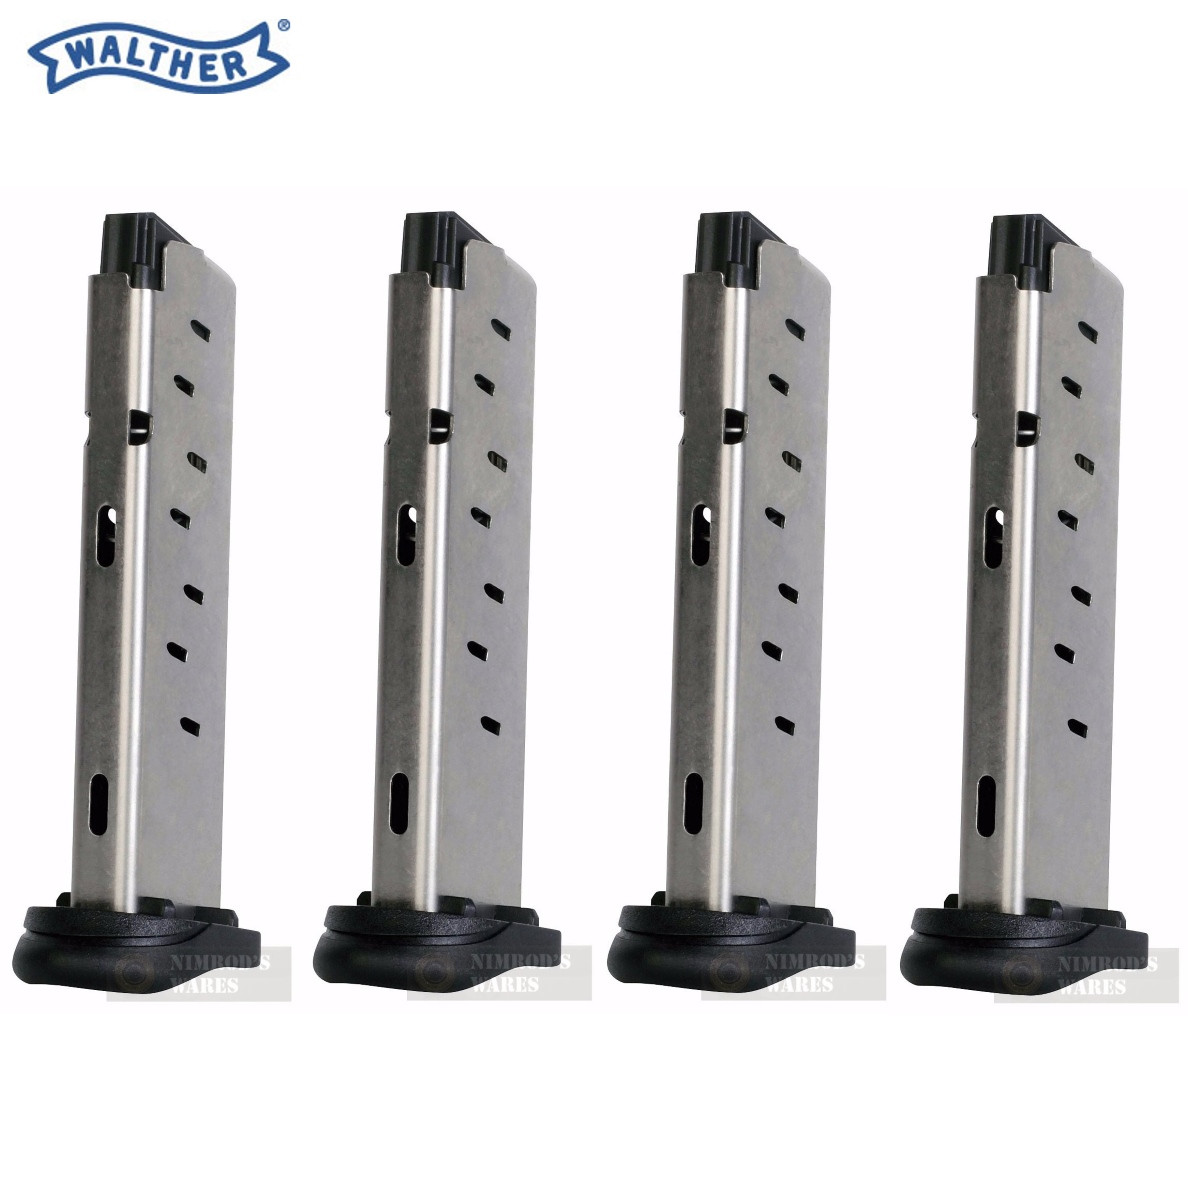 4 Pack Walther Pk380 380acp 8 Round Steel Magazine 505600